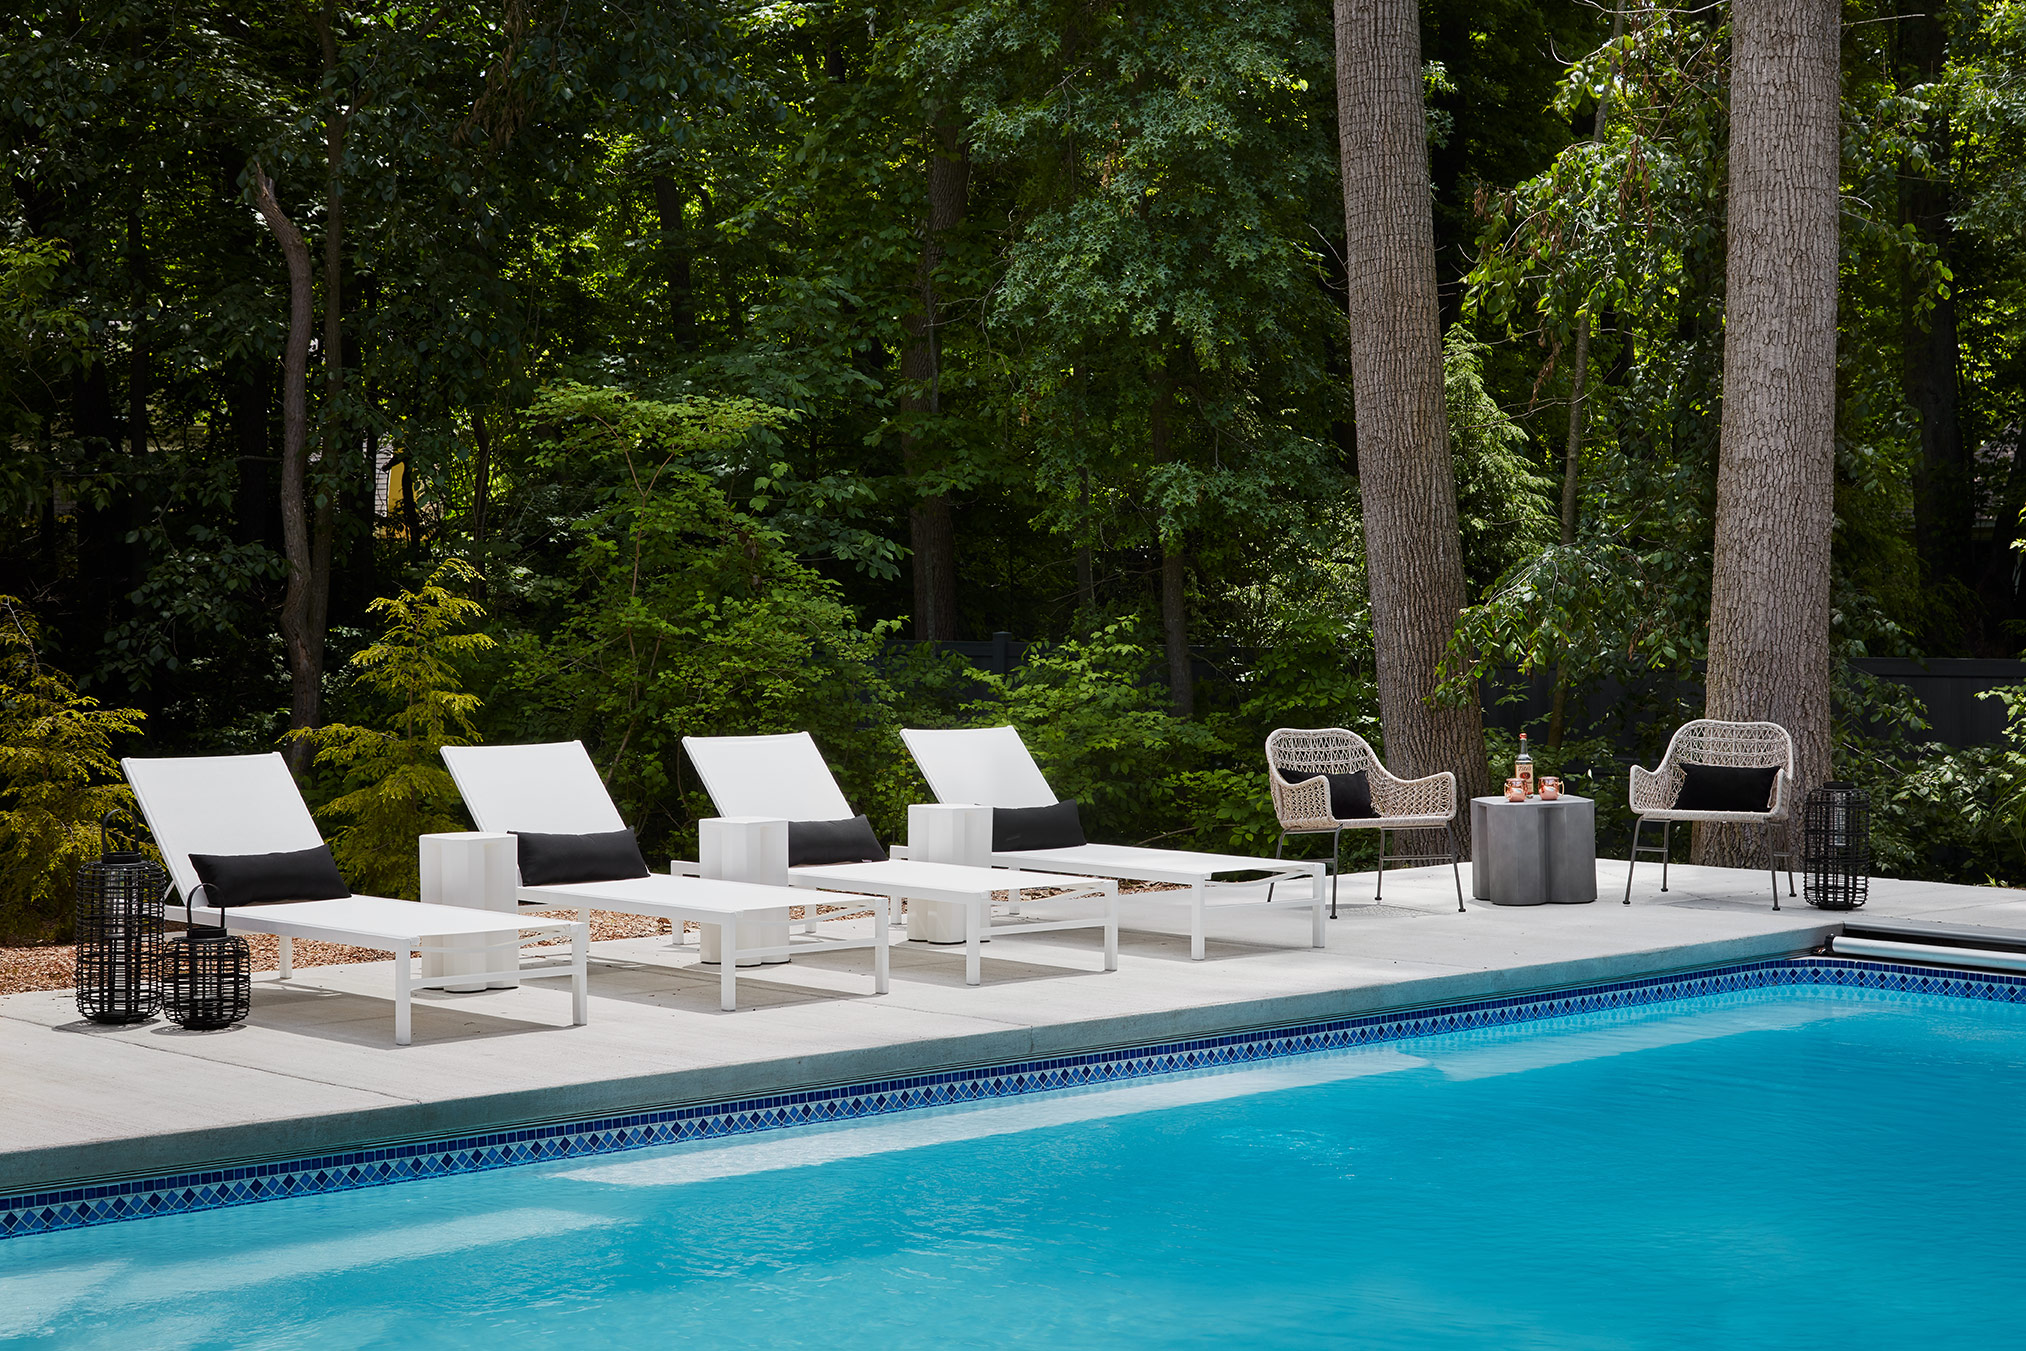 Beside the stunning pool, we introduced crisp white chaise lounges and textural woven lounge chairs. We completed the look with black accent pillows, concrete side tables and black lattice lanterns.